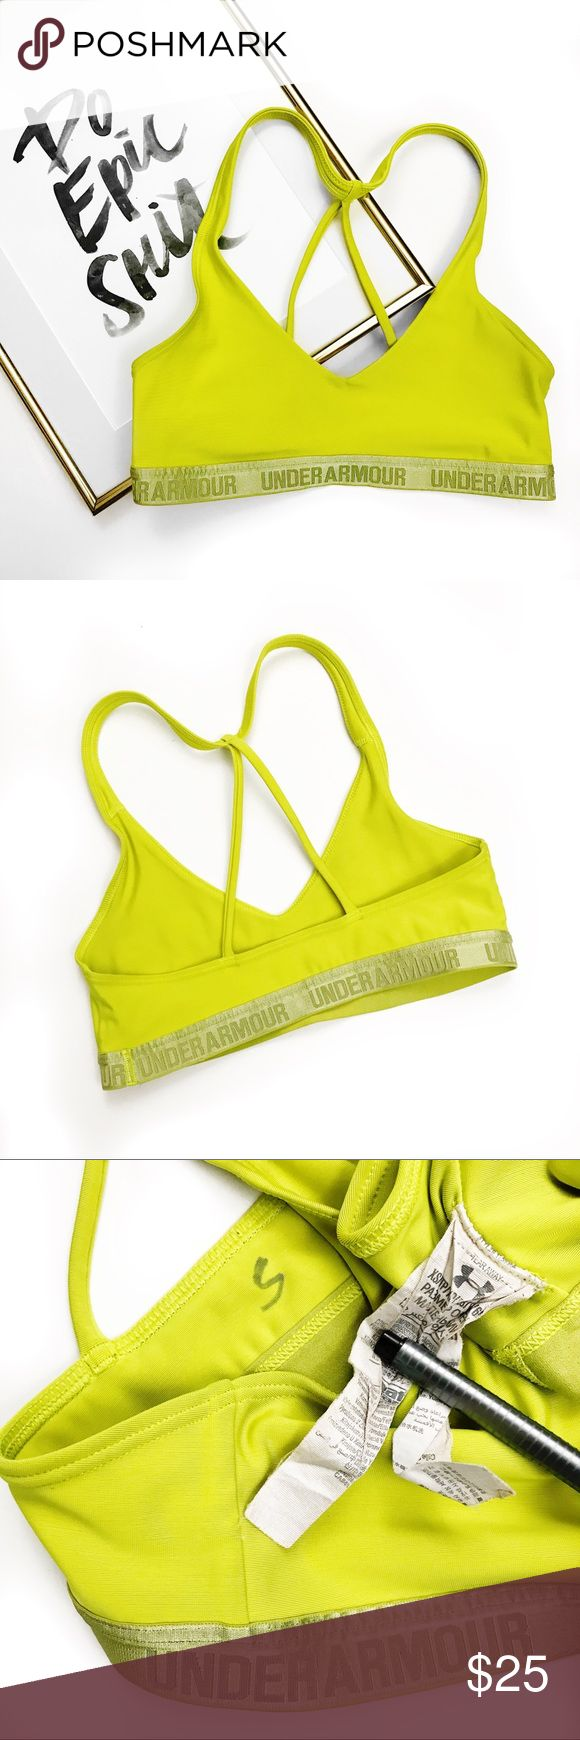 Under armour neon strappy reflective band bra Super chic! No trades. All photos are my own of the actual item you will receive. Send me an offer! Great condition! Under Armour Intimates & Sleepwear Bras